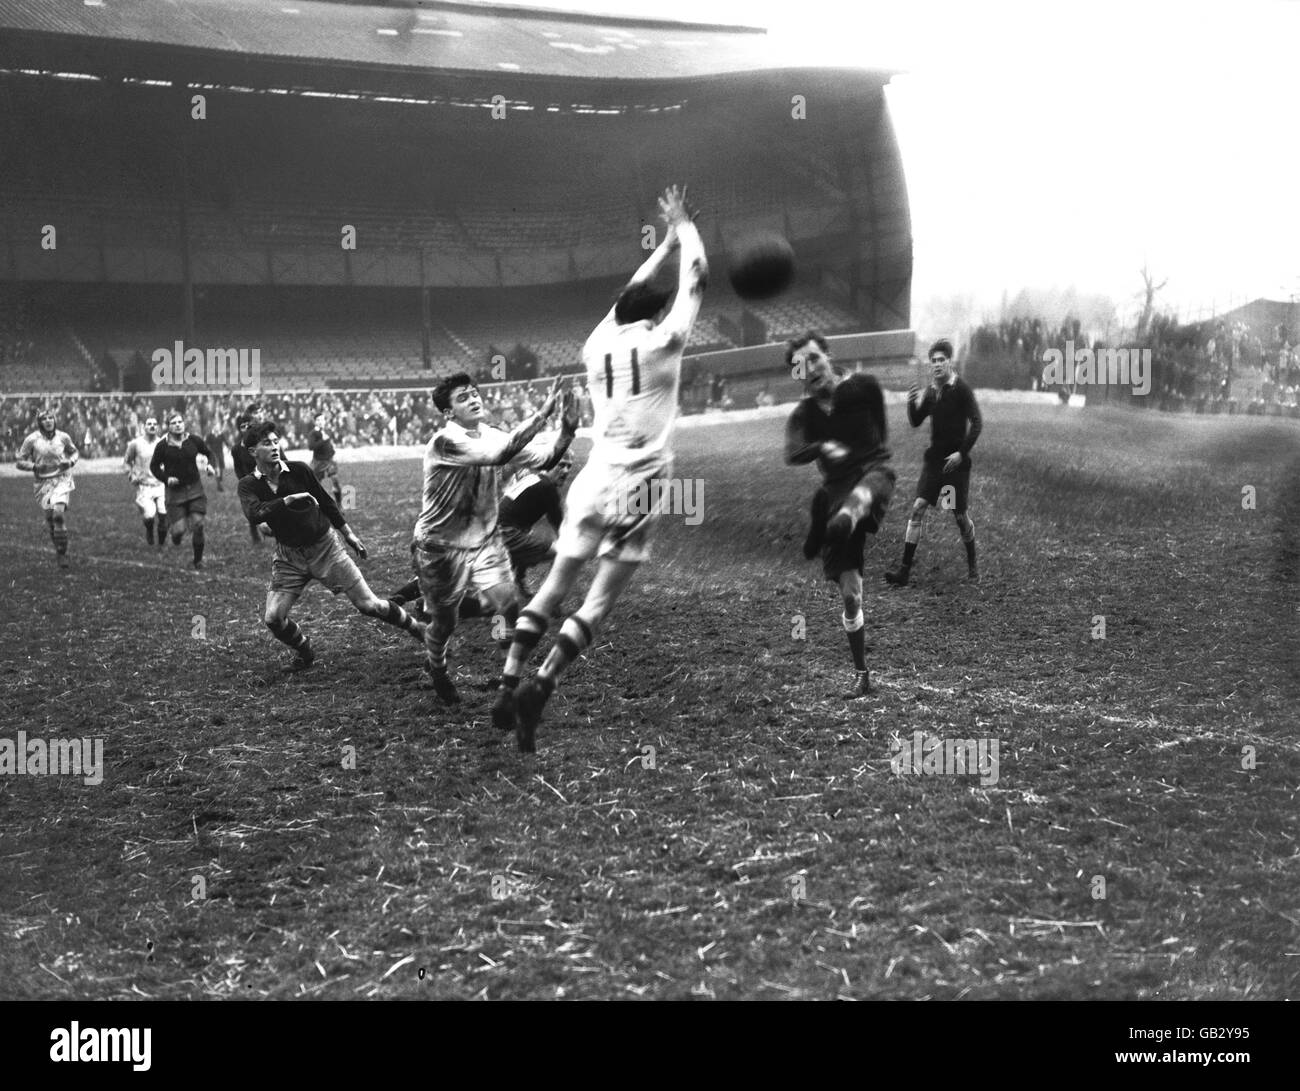 Rugby Union - England v The Rest - Twickenham - Stock Image